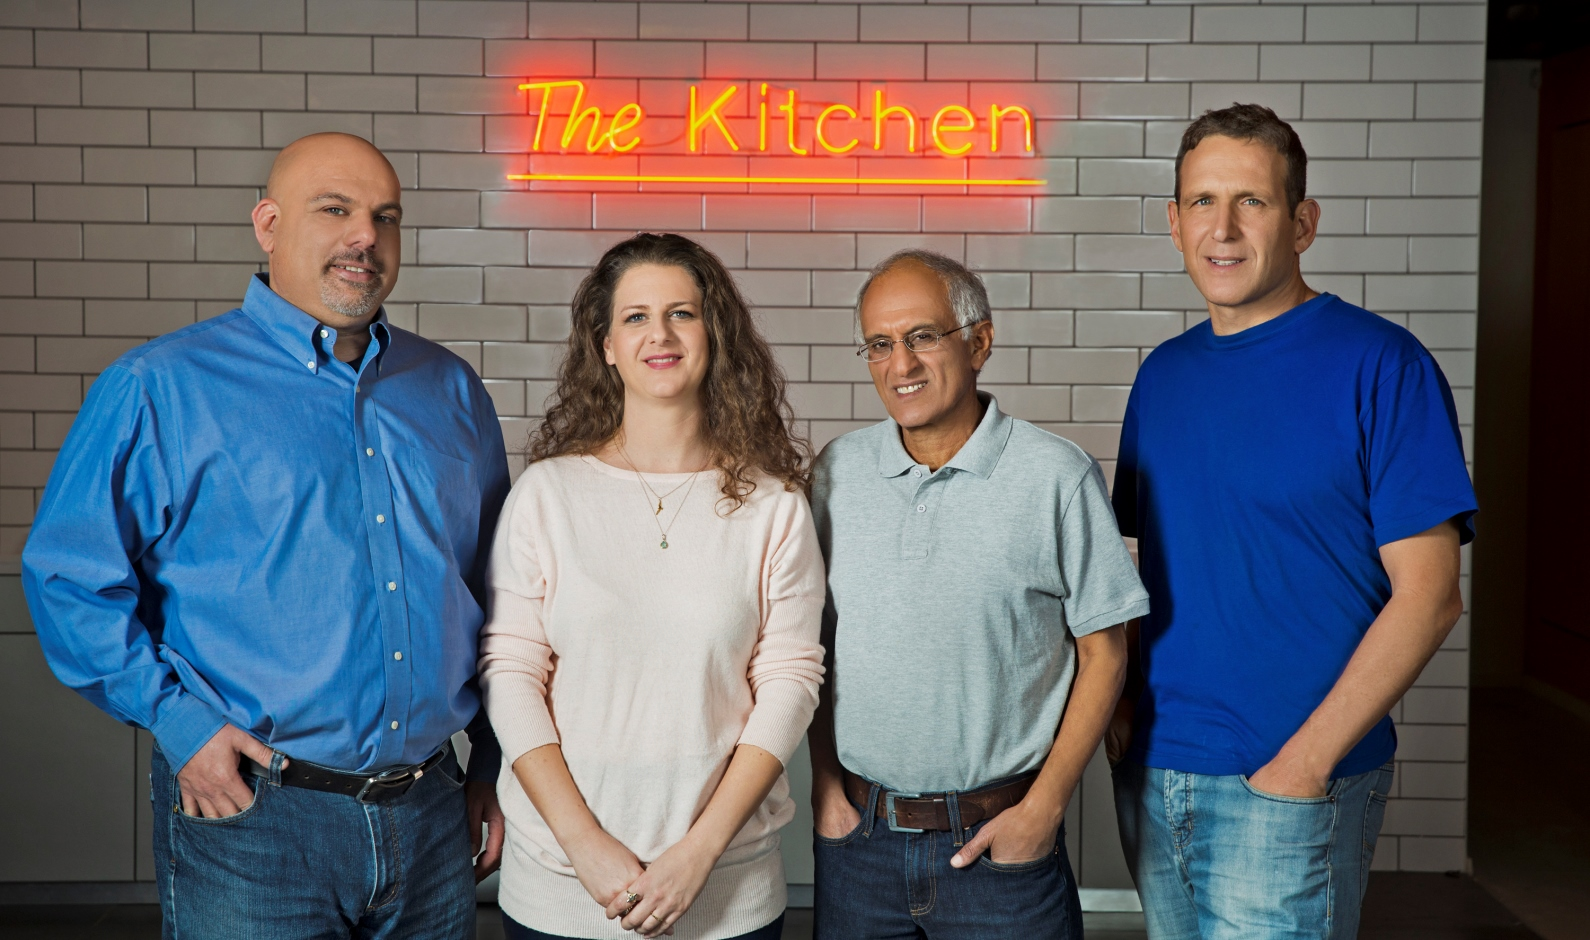 The Kitchen team, from left, VP business development Amir Zaidman, operations manager Moran Diment, CTO David Nini and CEO Jonathan Berger. Photo: courtesy